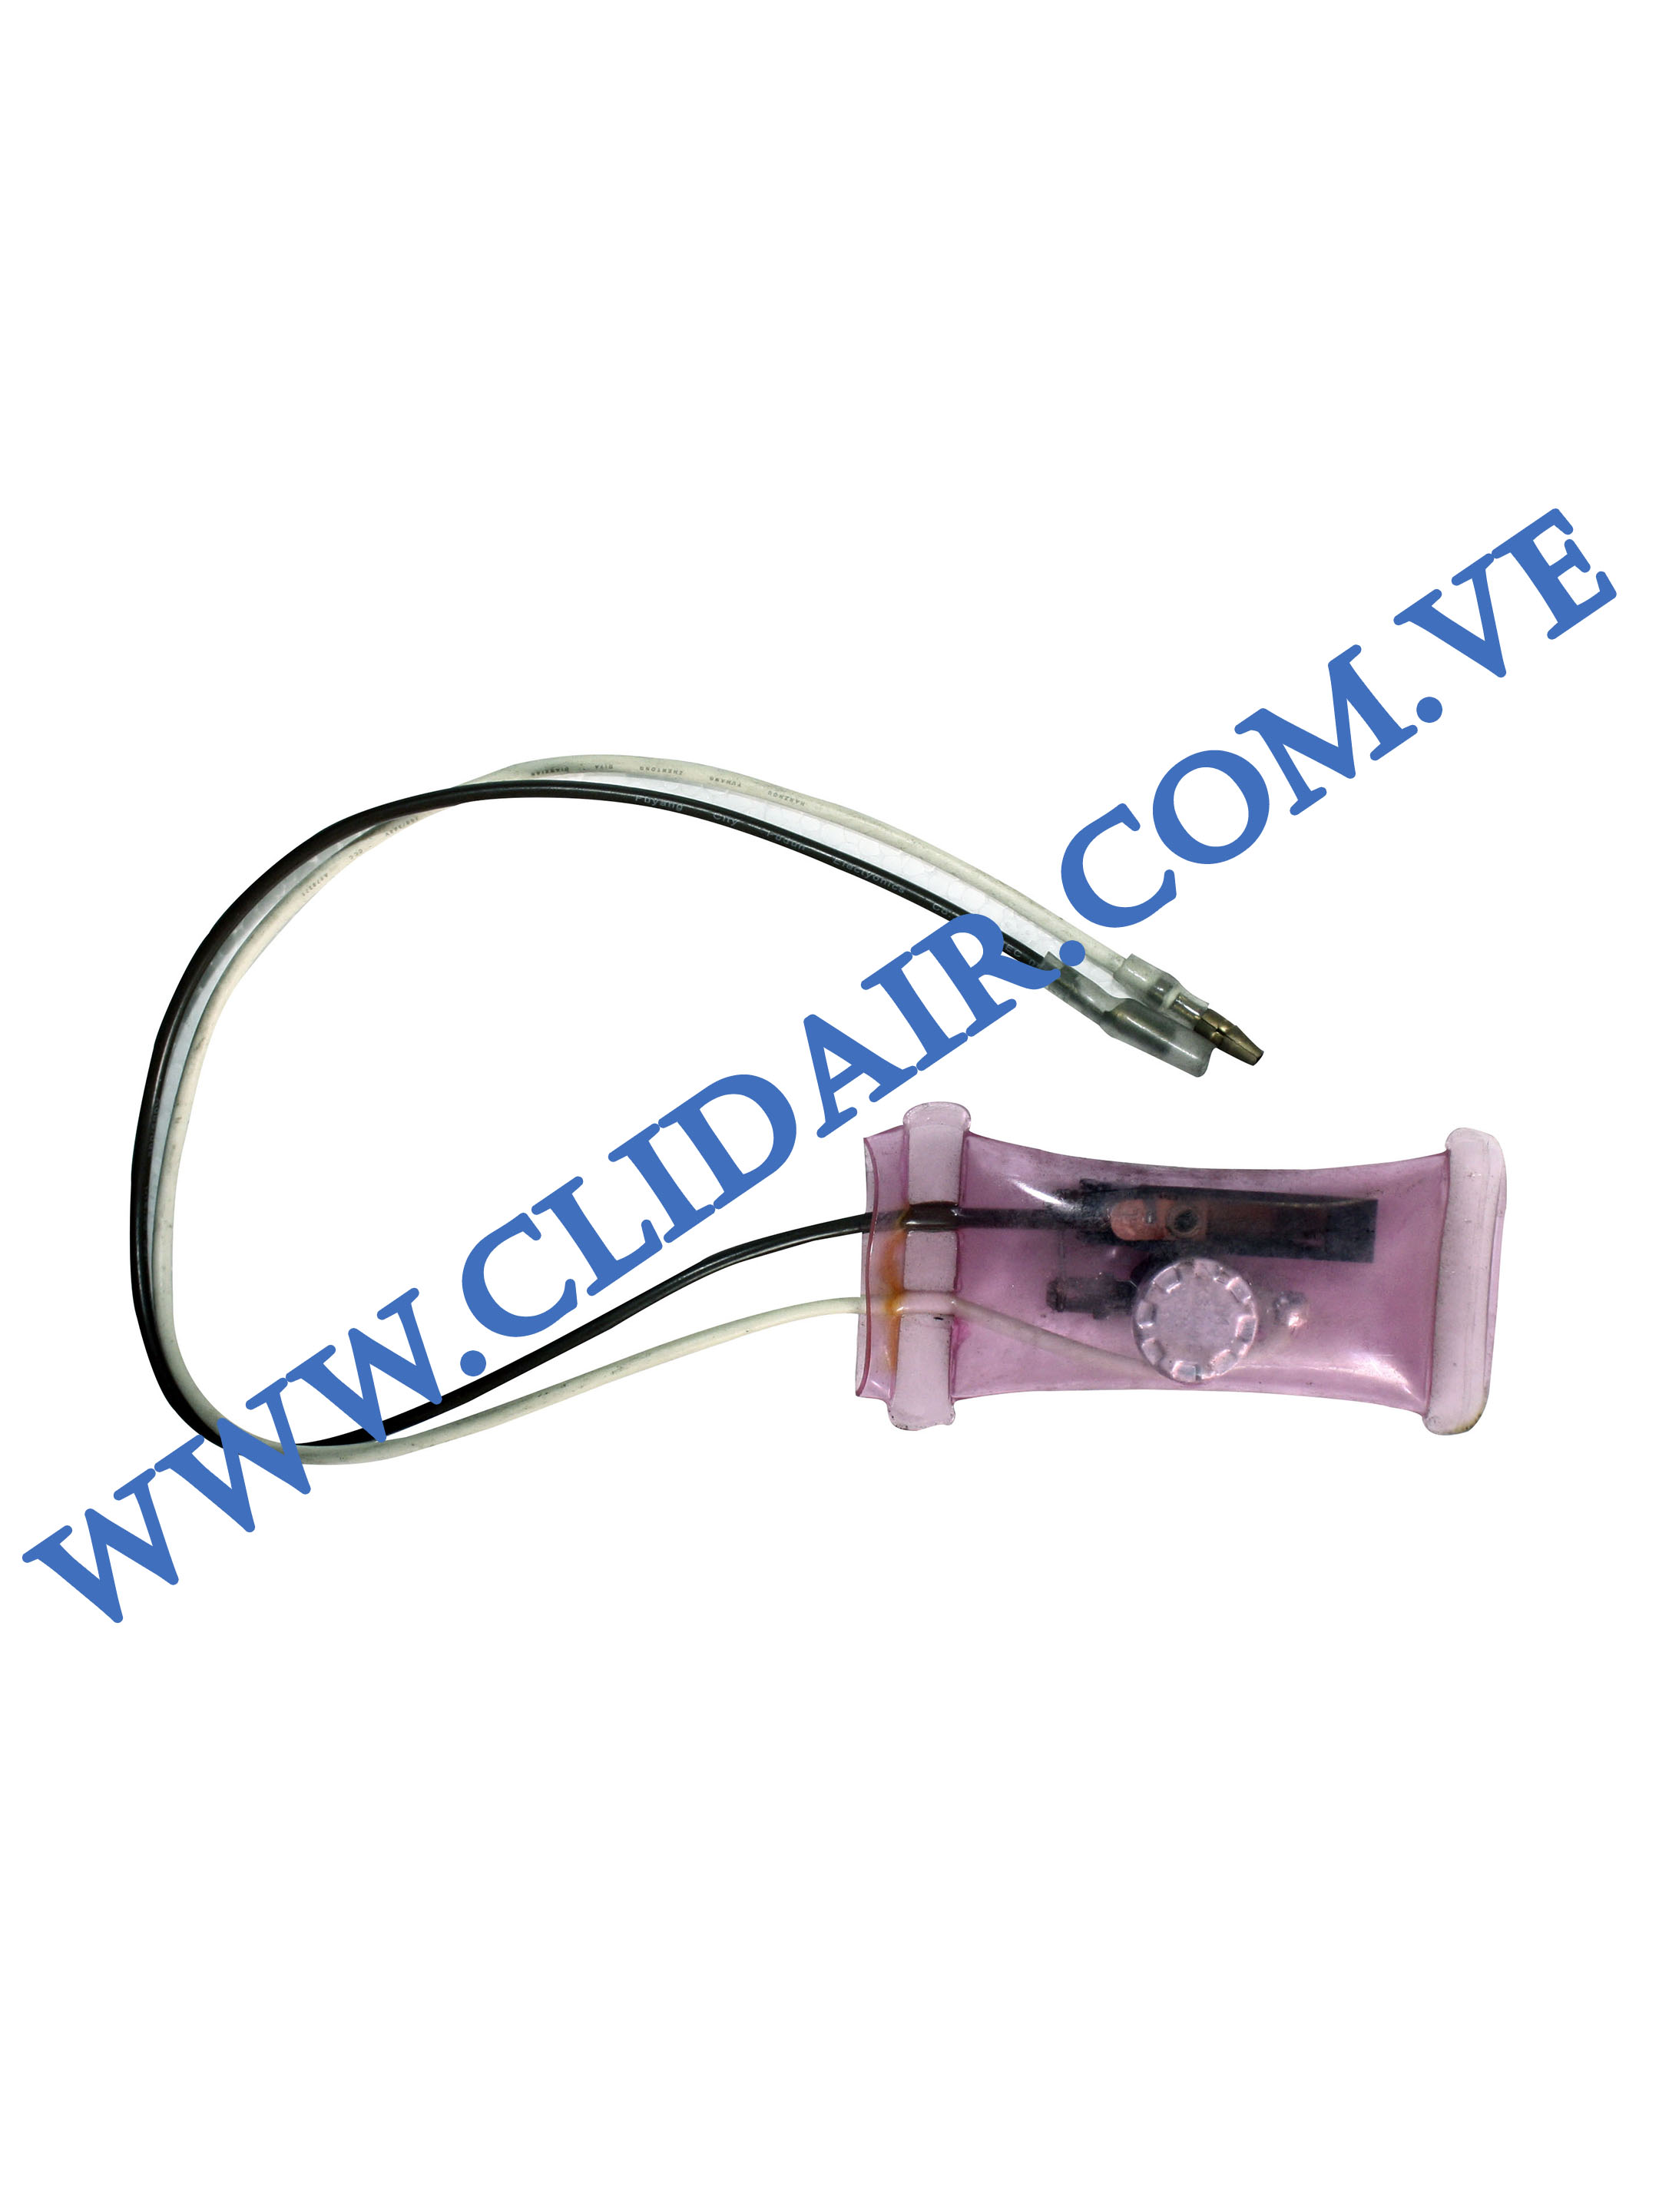 TERMOSTATO BIMET. NEVERA ASIATICA L.G 2 CABLE+RESIST.  R040504